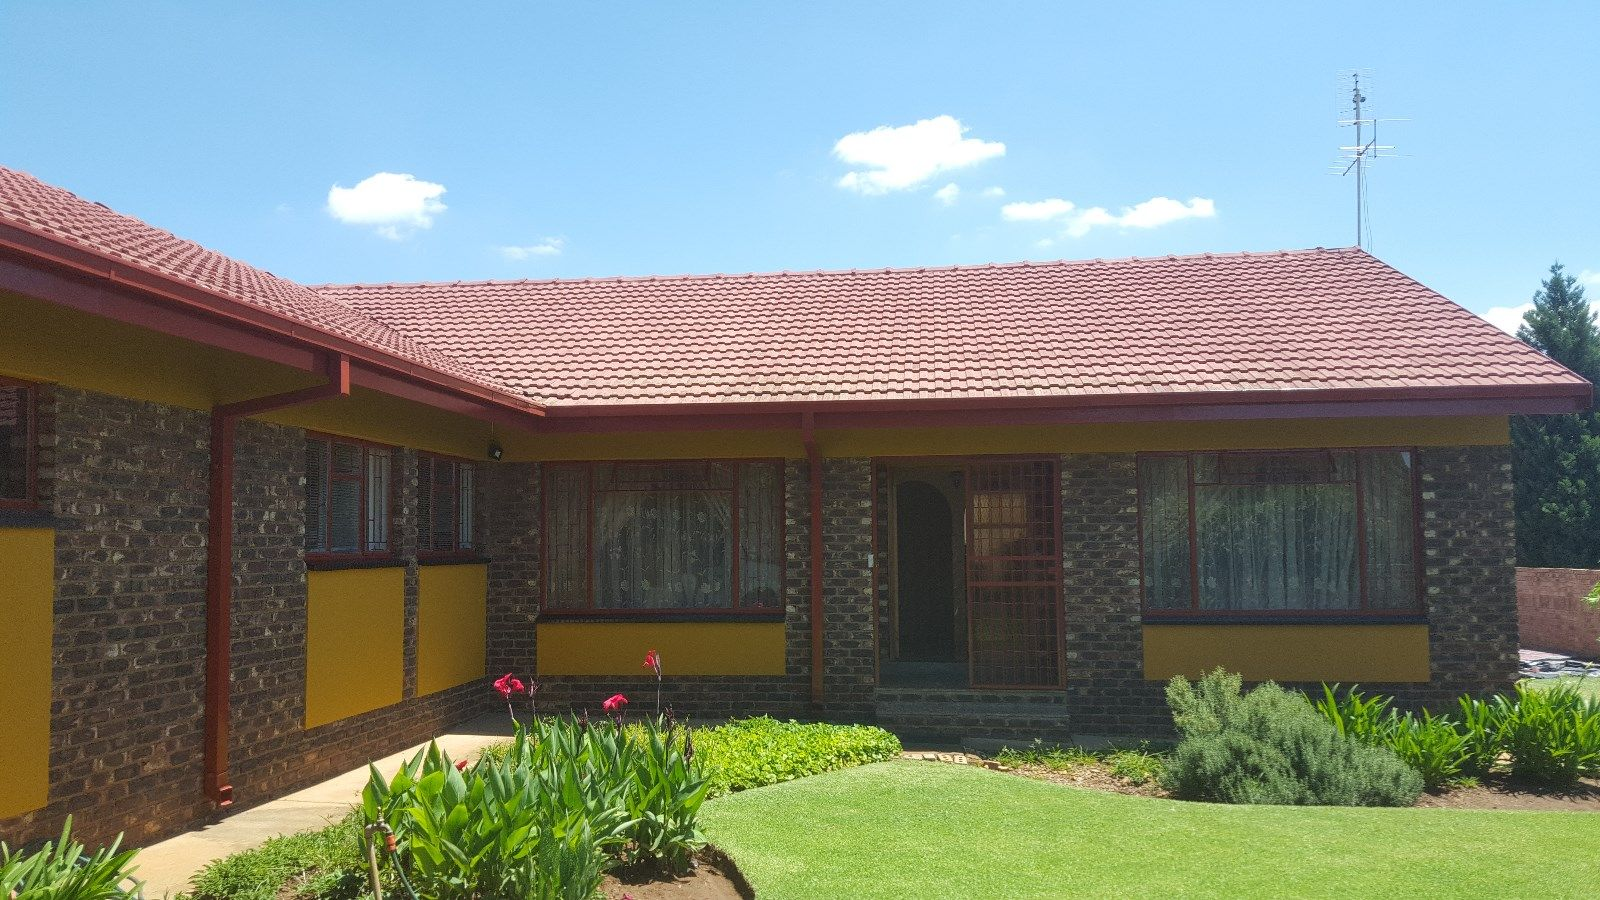 Potchefstroom Central for sale property. Ref No: 13451730. Picture no 18